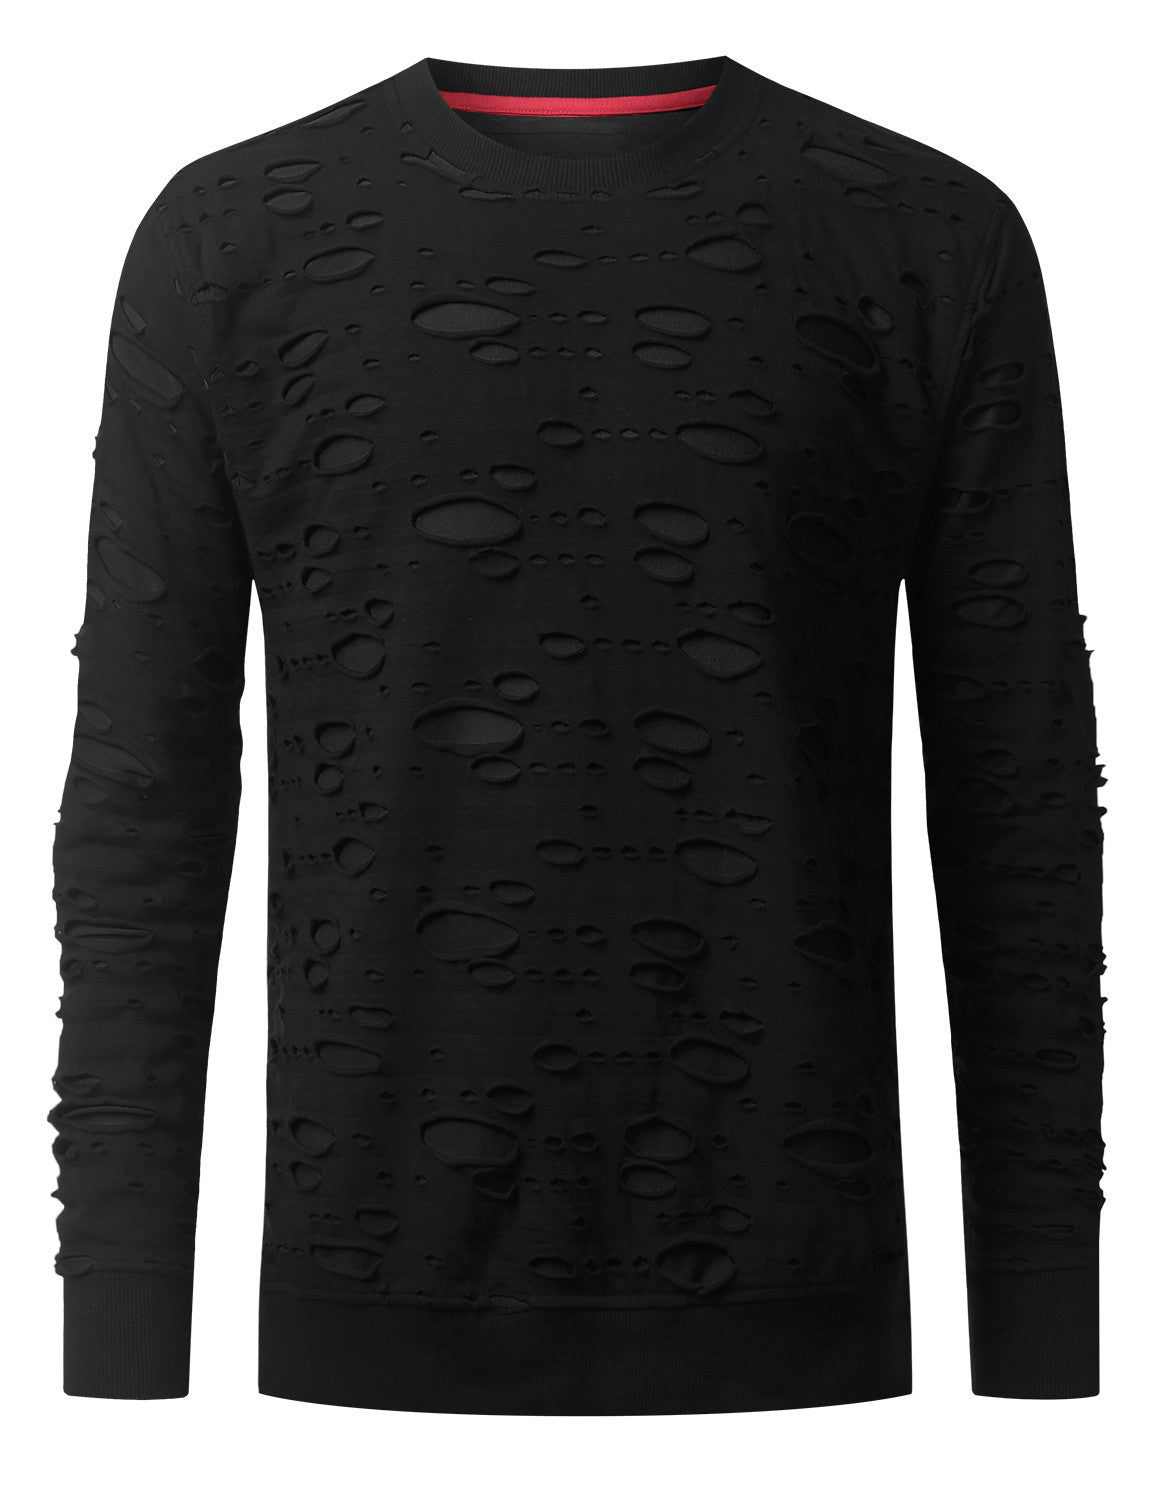 BLACKBLACK 2 Tone Ripped Long Sleeve Tshirt - URBANCREWS